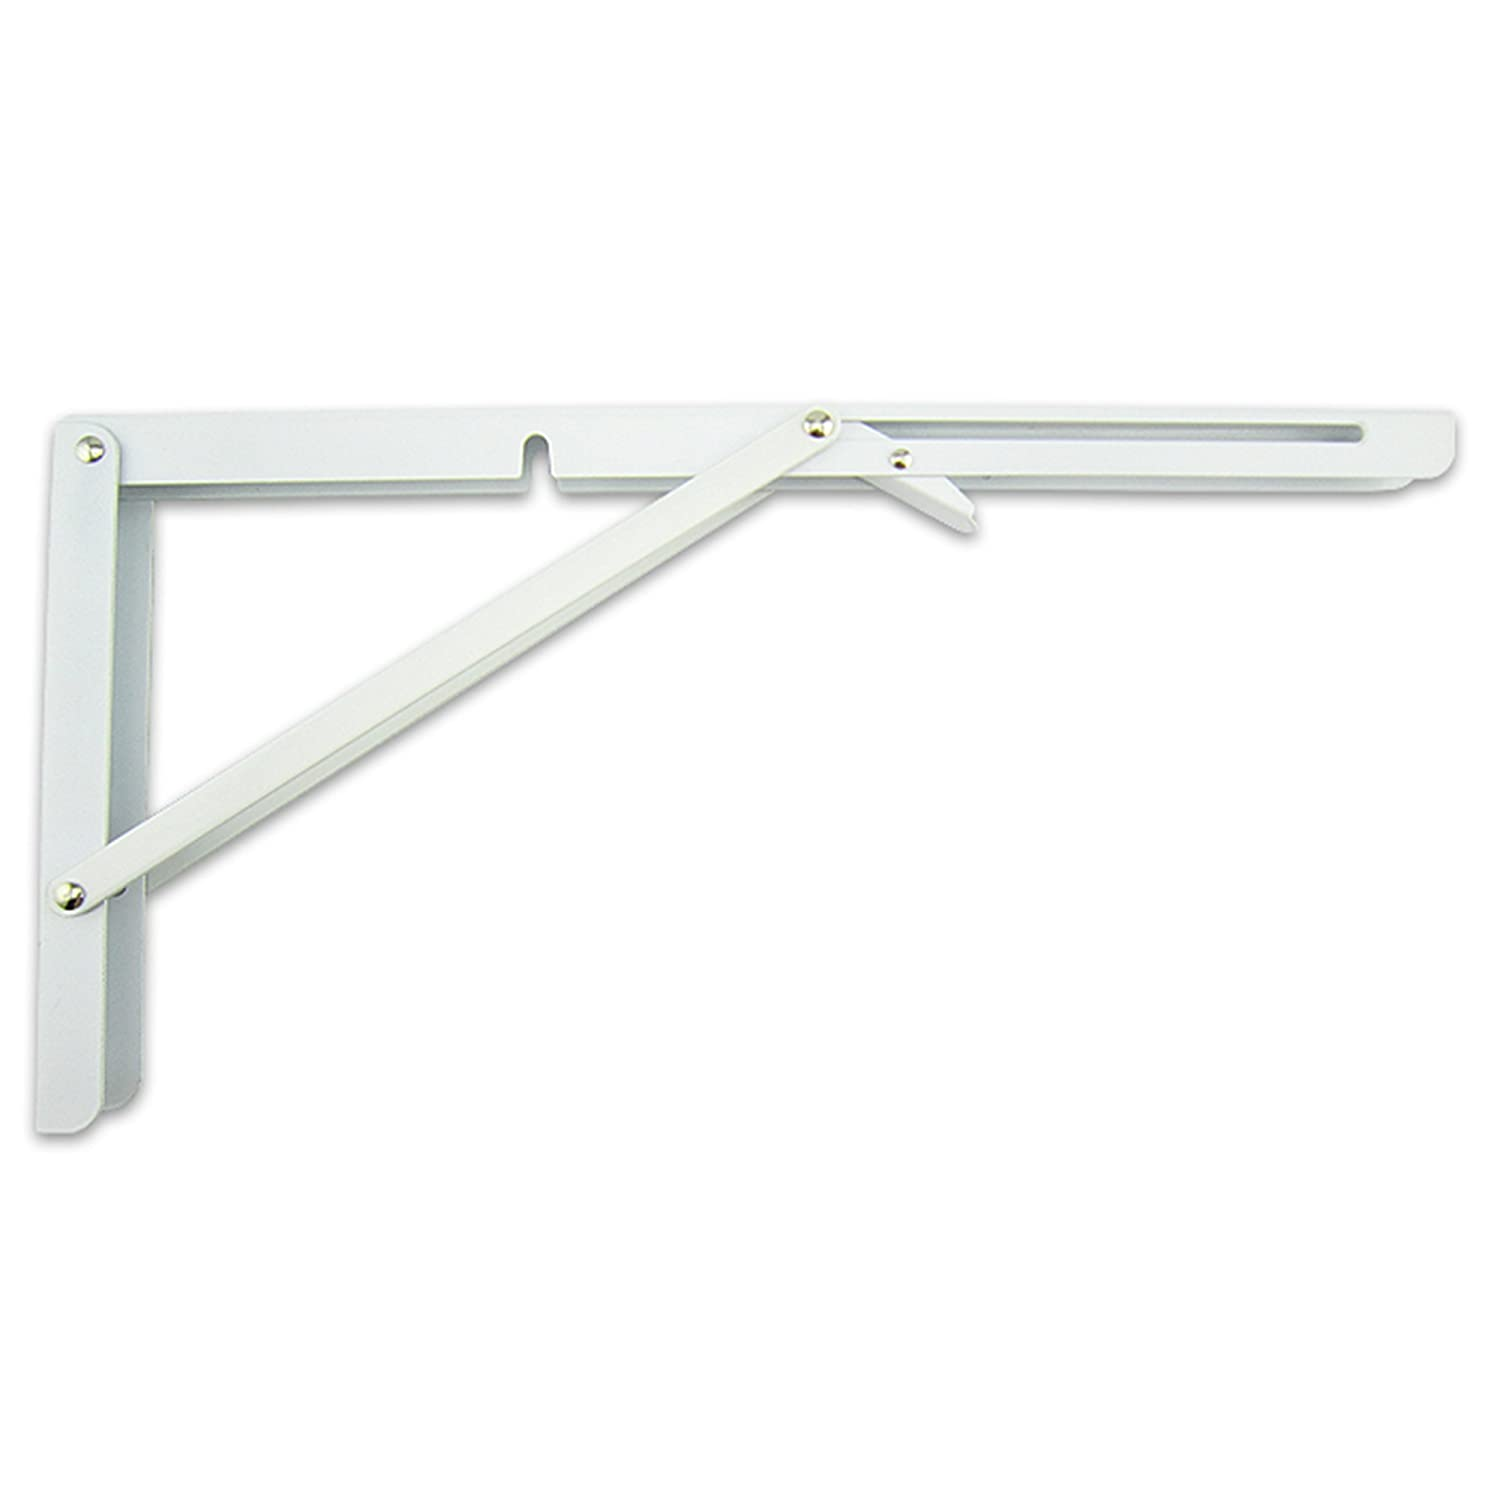 MechWares Folding Bracket For Shelves Tables Long Release Space Saving For Standing Desk Wall-Mounted Drop-Leaf In Kitchen | Laundry Room | Garage | Boat | RV -1 Pcs (16 inch, White)